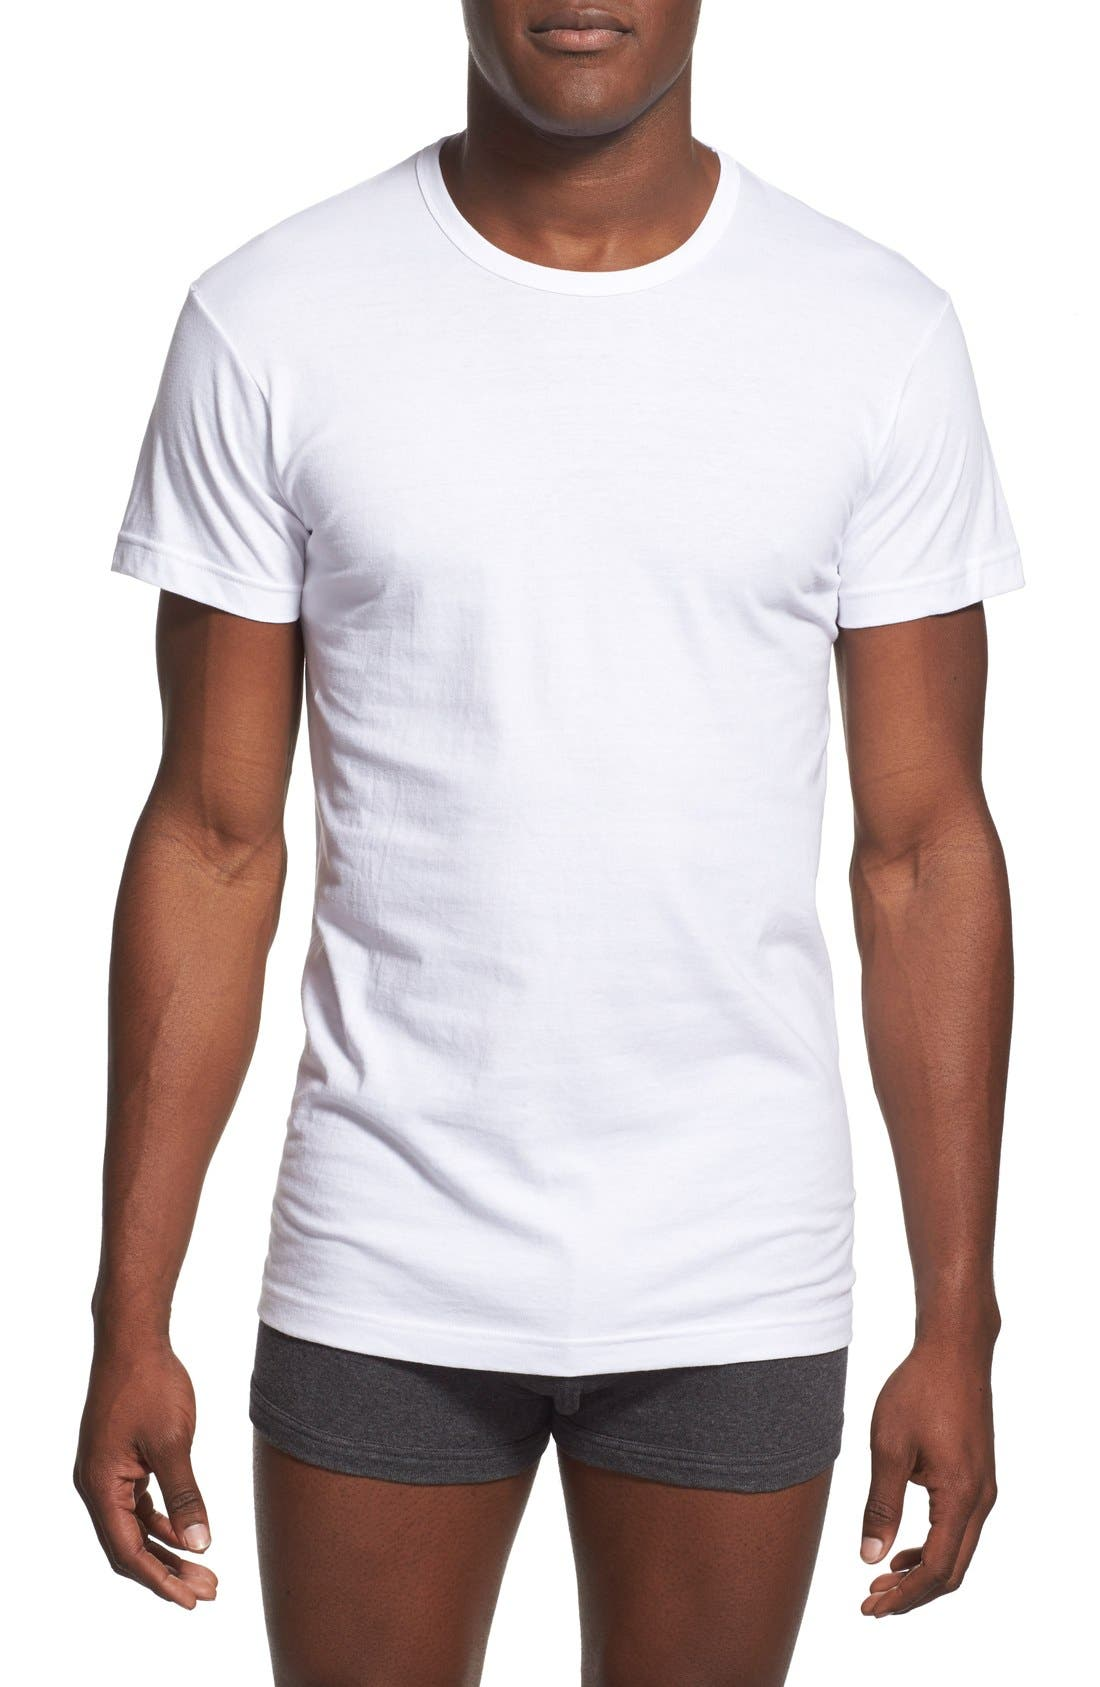 Alternate Image 1 Selected - 2(x)ist Slim Fit 3-Pack Cotton T-Shirt